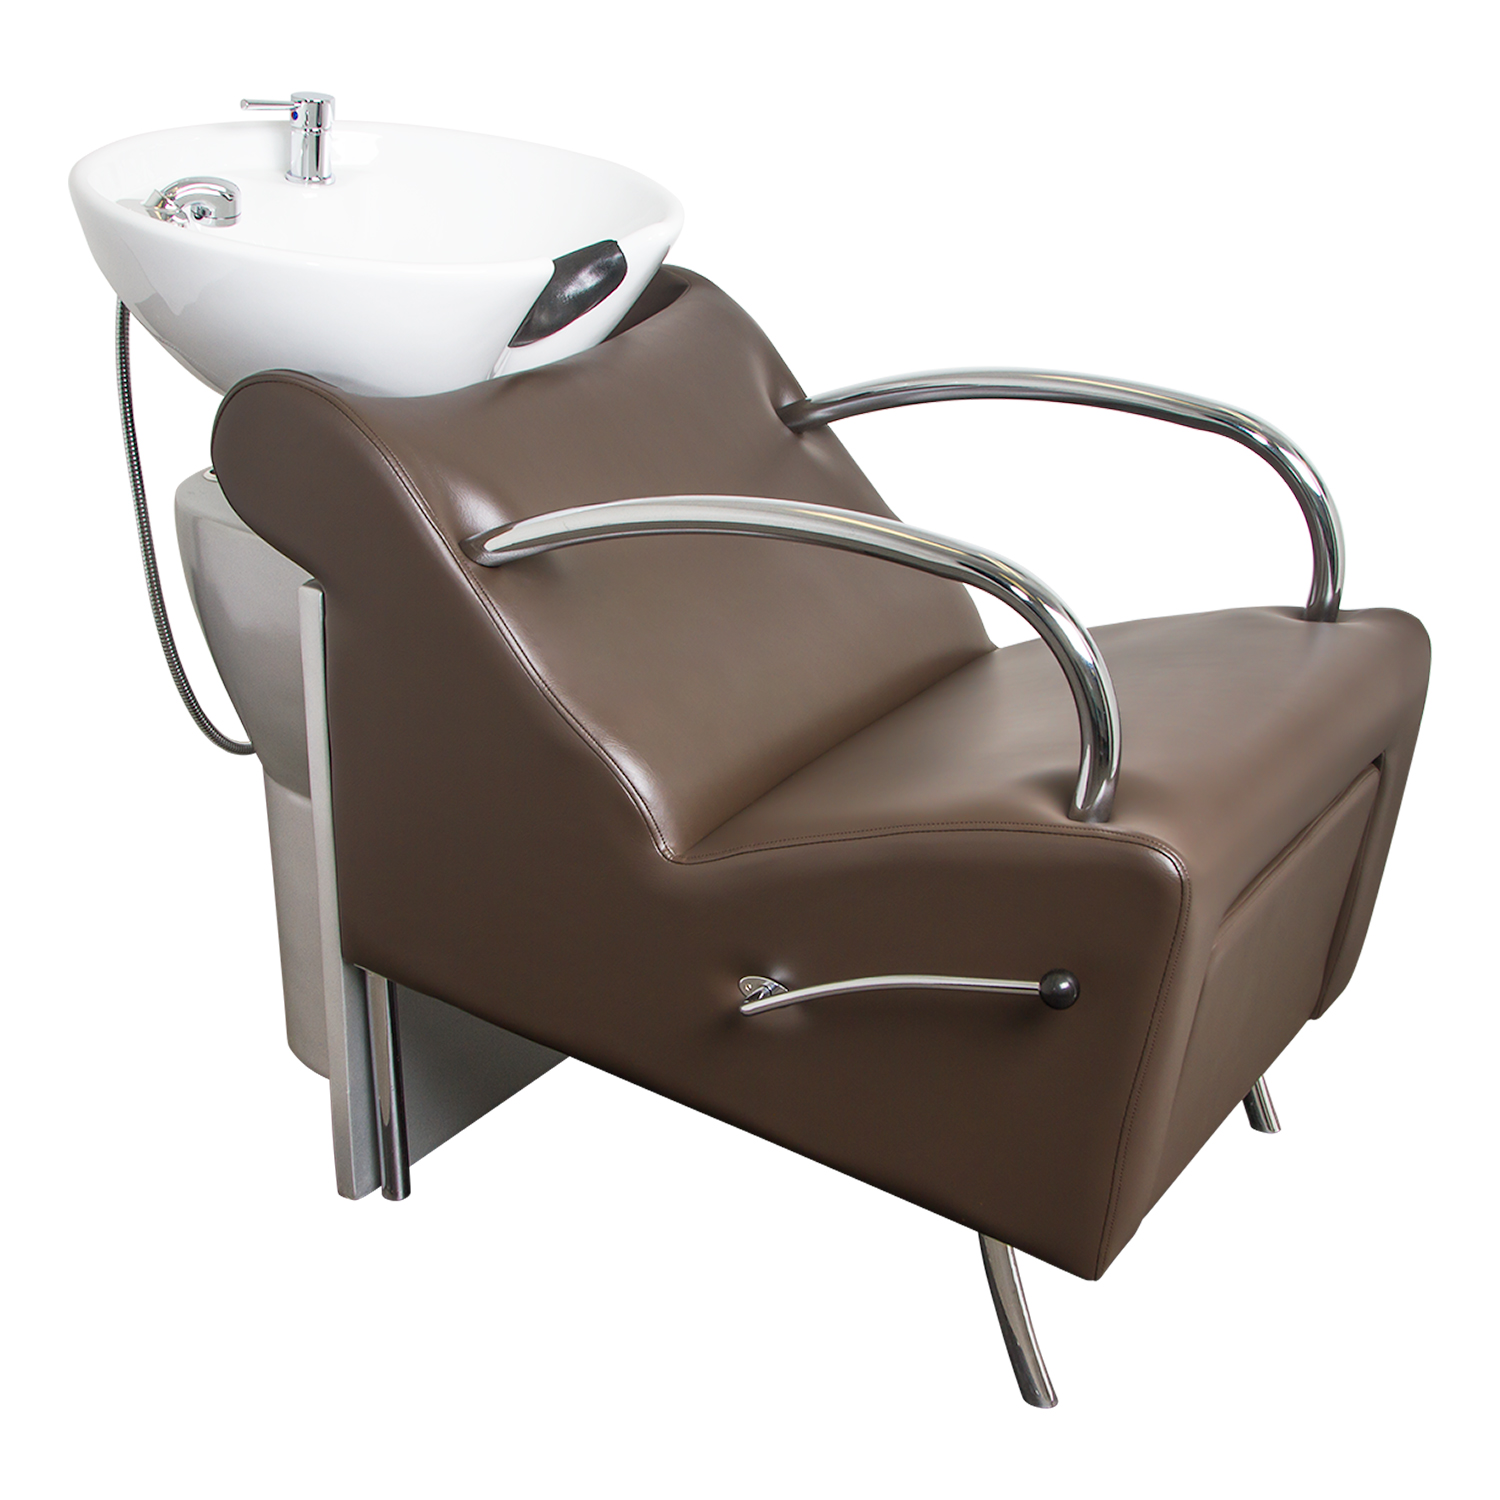 Brown Stockholm Shampoo Chair with White Bowl alternative product image 2